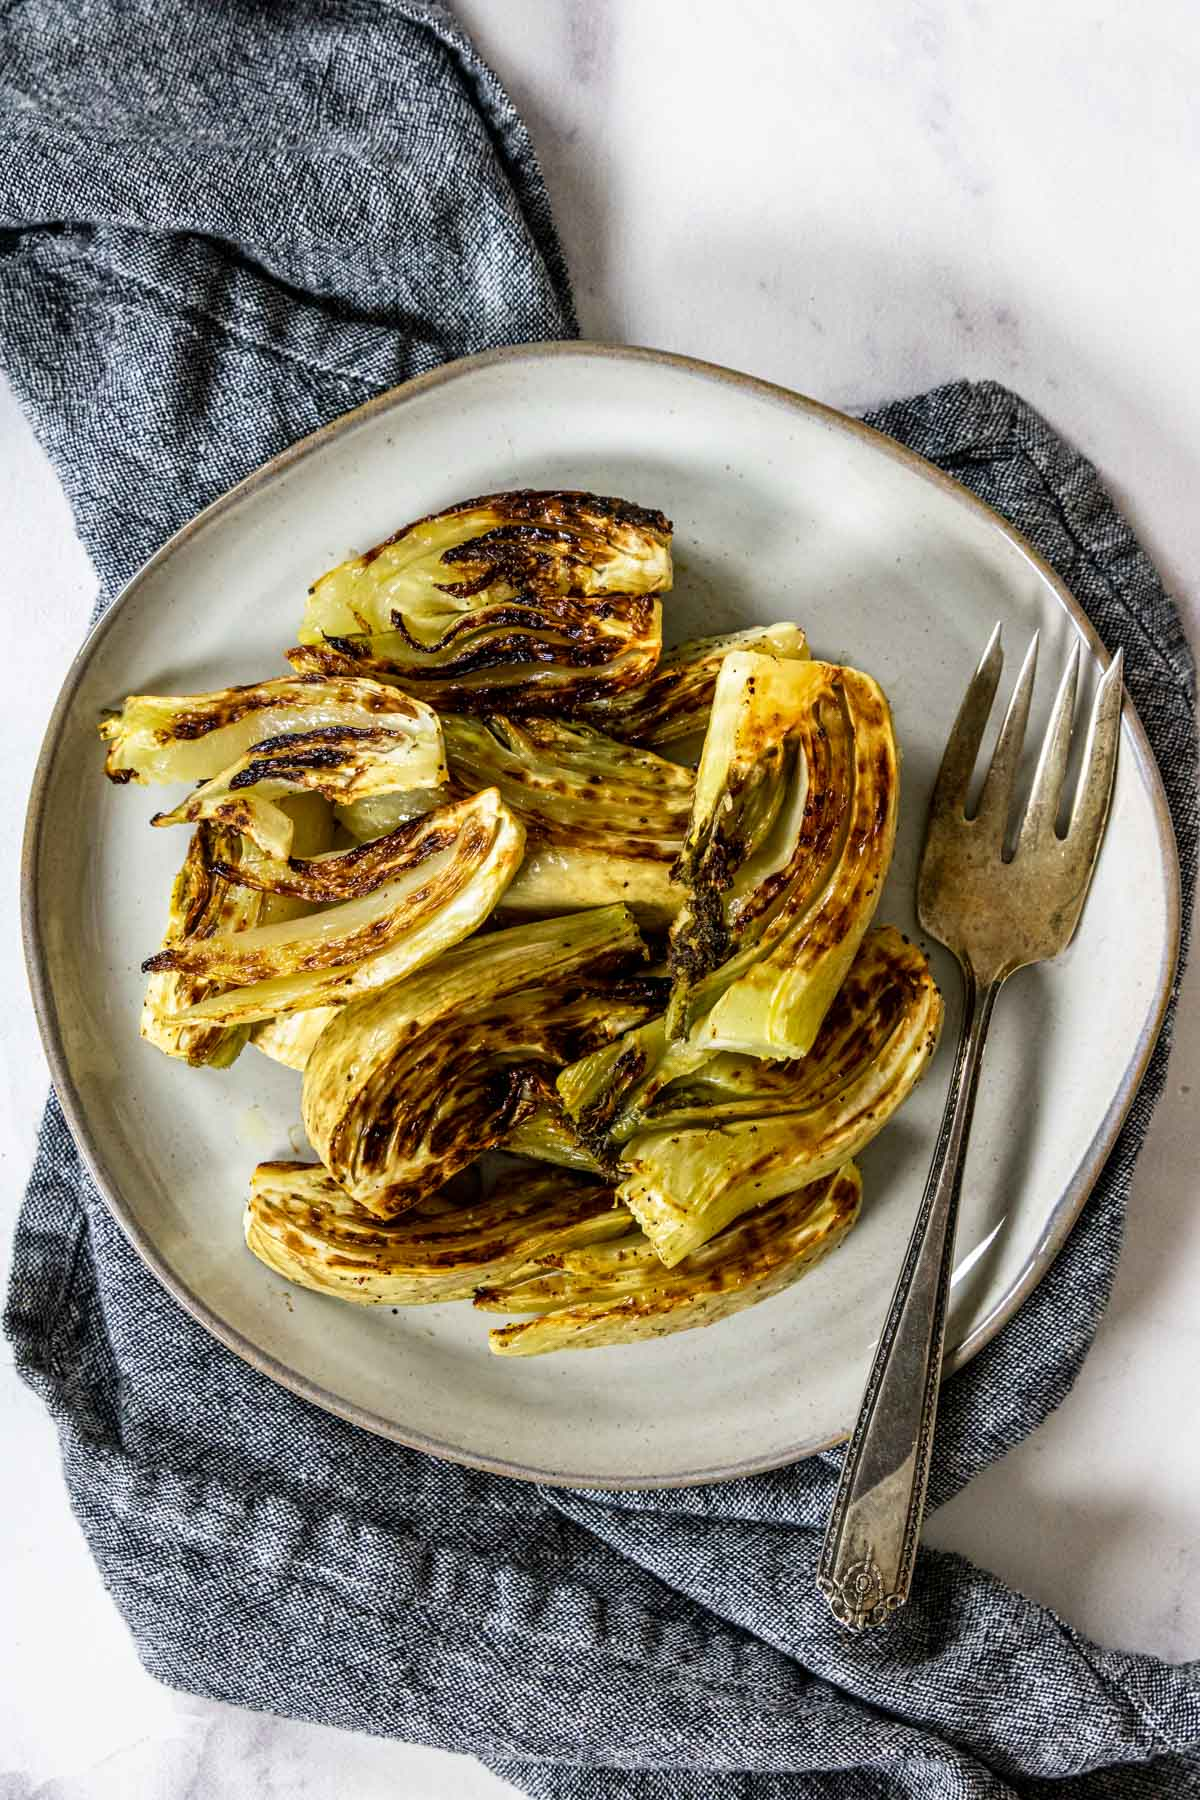 roasted fennel wedges on a plate with a serving fork